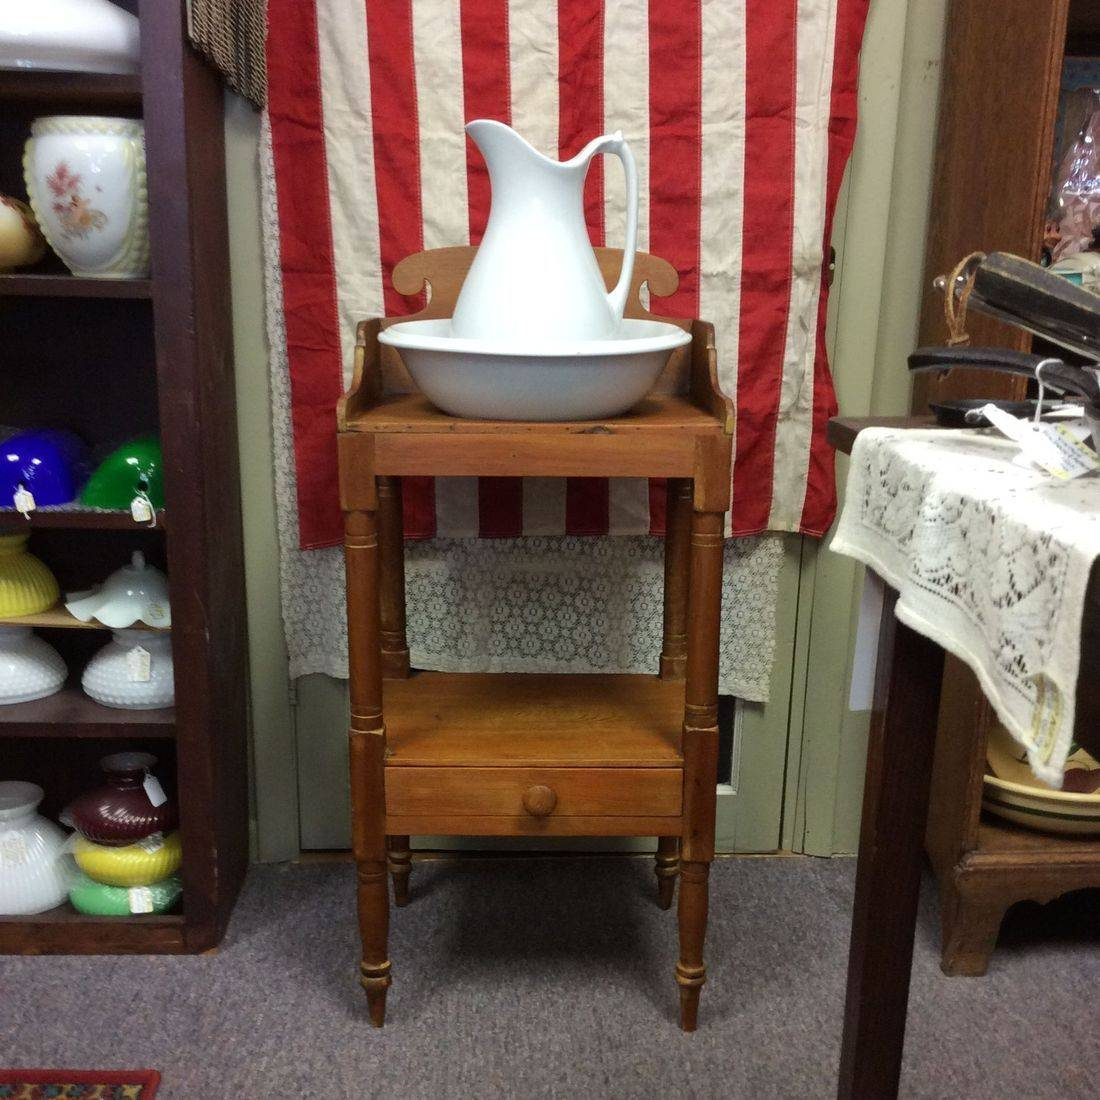 1850's/70's Maple Wash Stand, w/J&G Meakin Pitcher and Henry Alcock &Co. Wash Bowl   $175.00